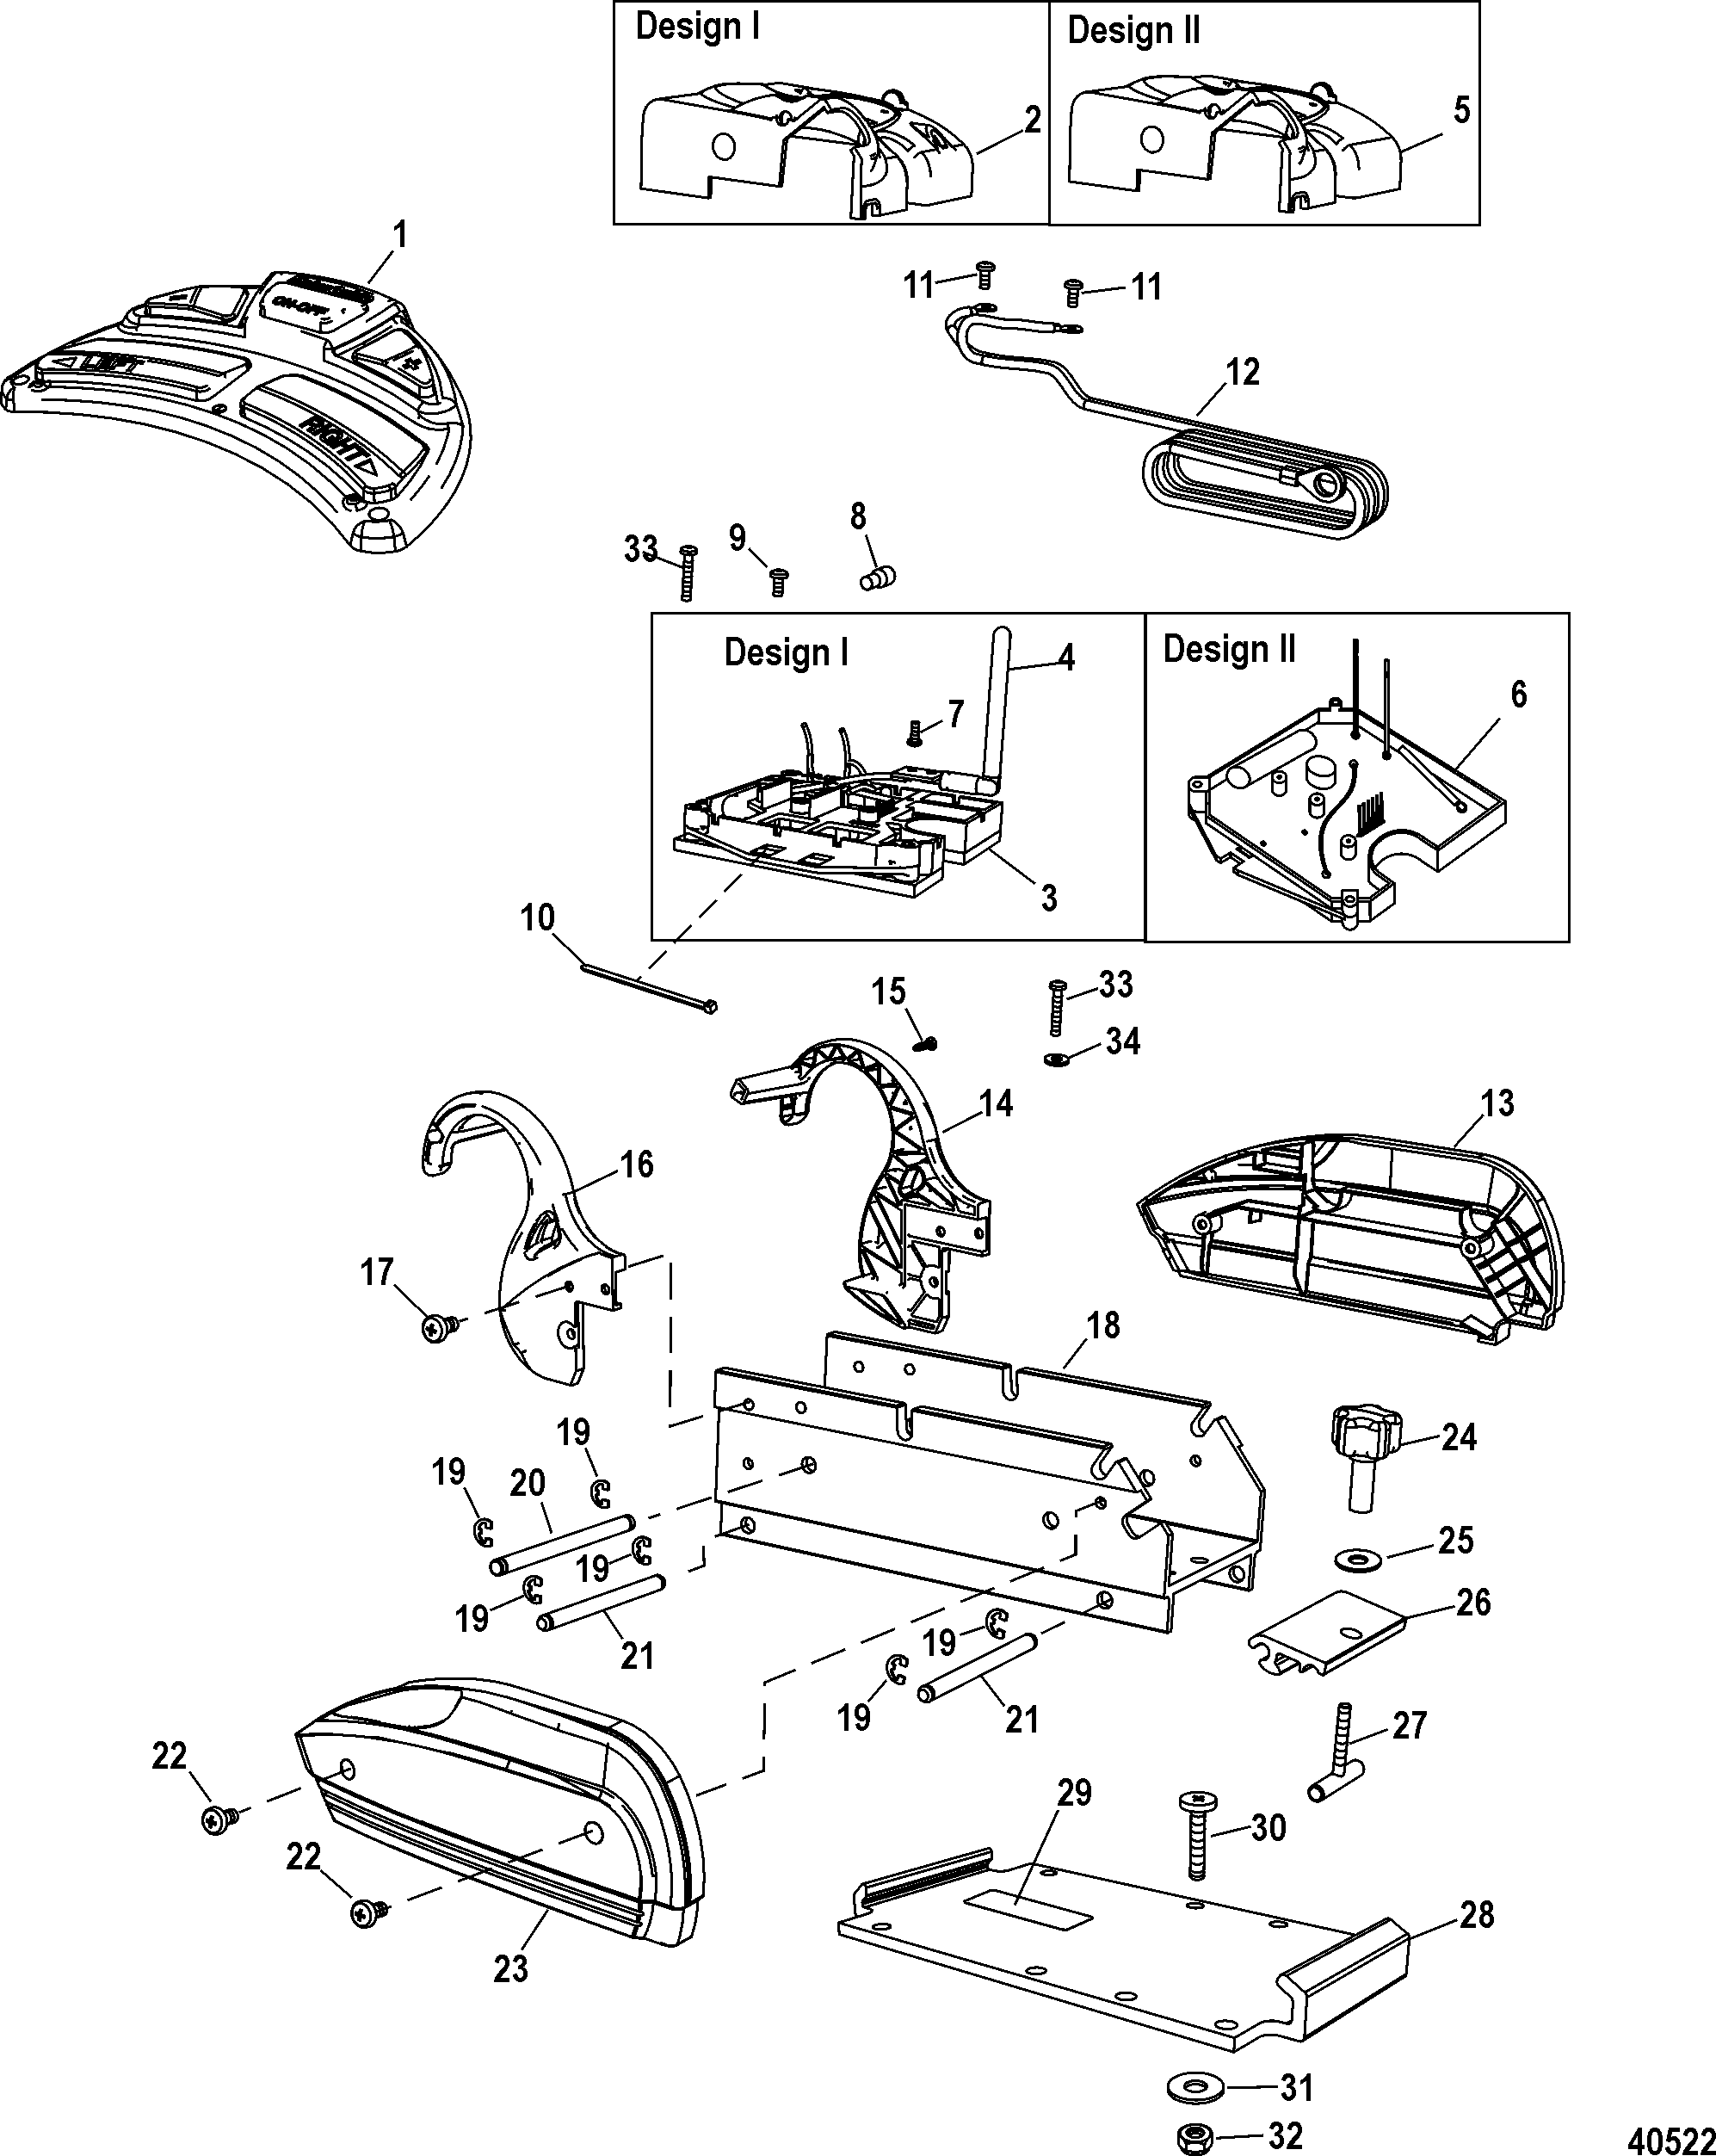 40522 diagrams 600338 motorguide trolling motor wiring diagram motorguide brute 767 wiring diagram at readyjetset.co